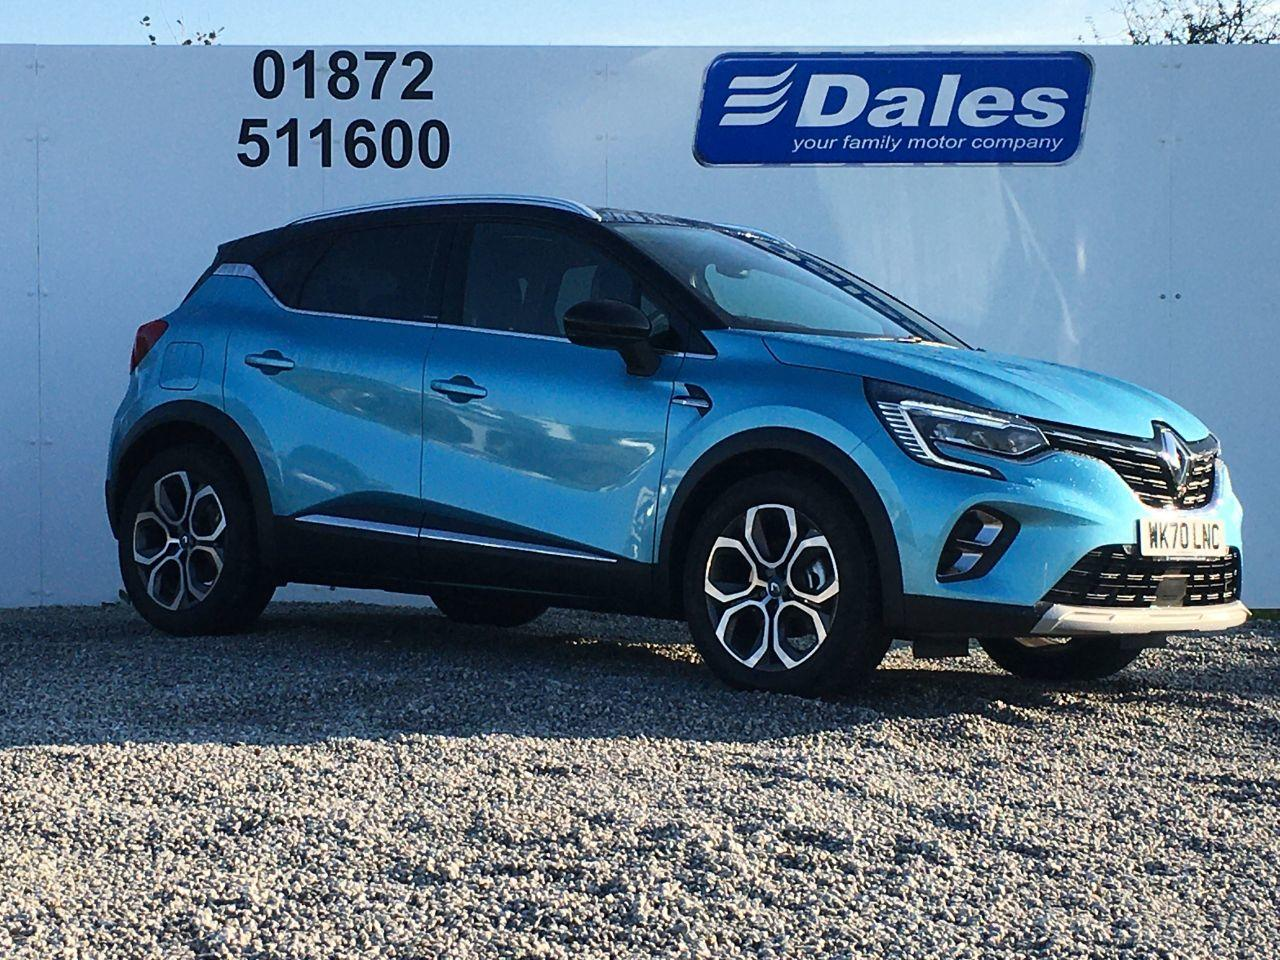 Renault Captur 1.6 E-TECH PHEV 160 S Edition 5dr Auto Hatchback Petrol / Electric Hybrid Blue/black